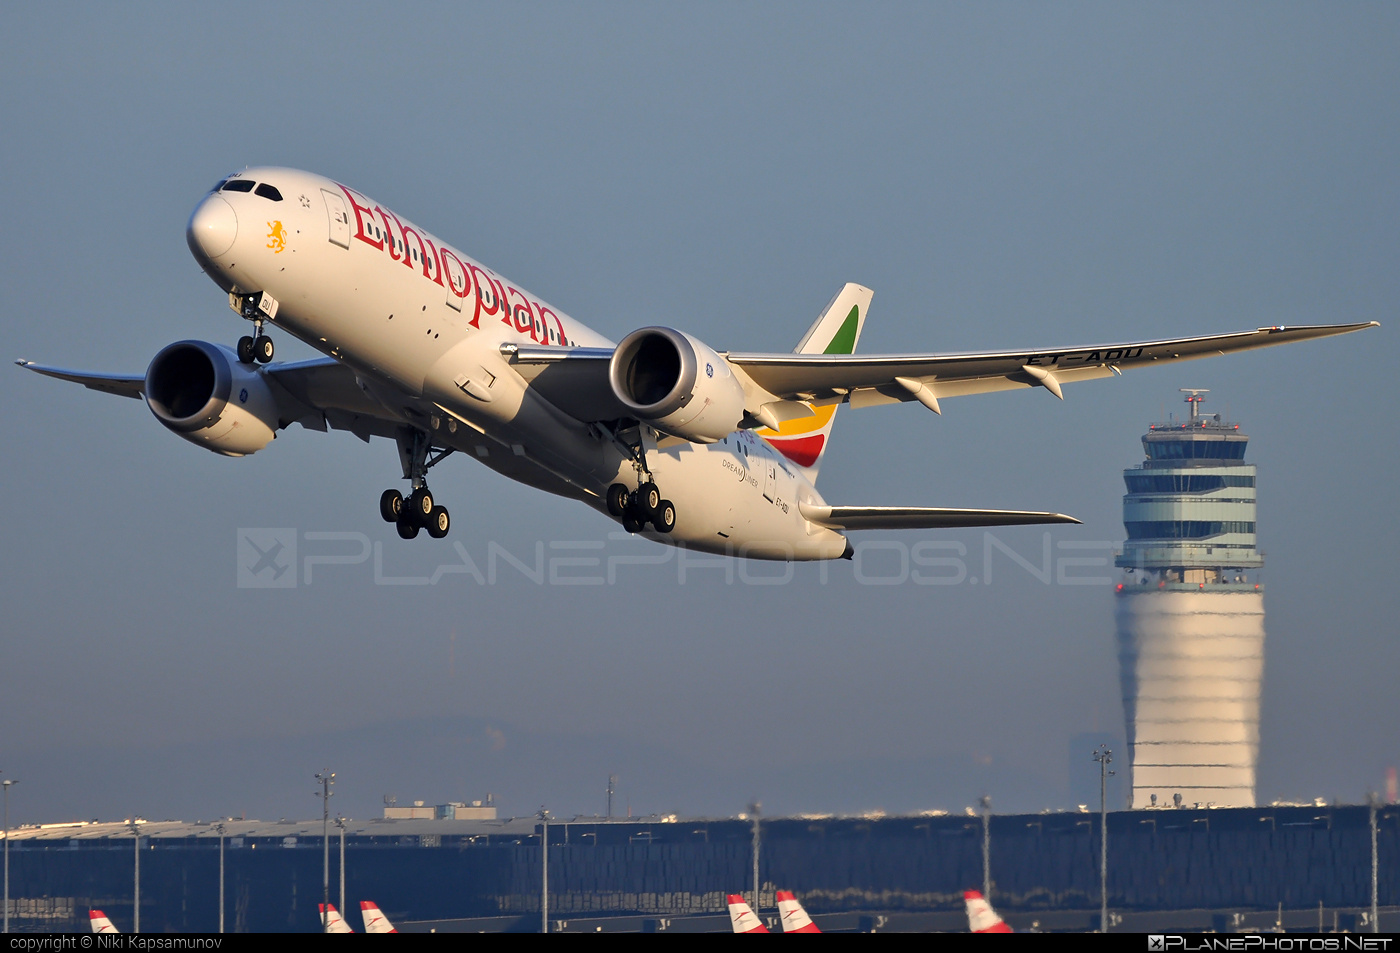 Boeing 787-8 Dreamliner - ET-AOU operated by Ethiopian Airlines #b787 #boeing #boeing787 #dreamliner #ethiopianairlines